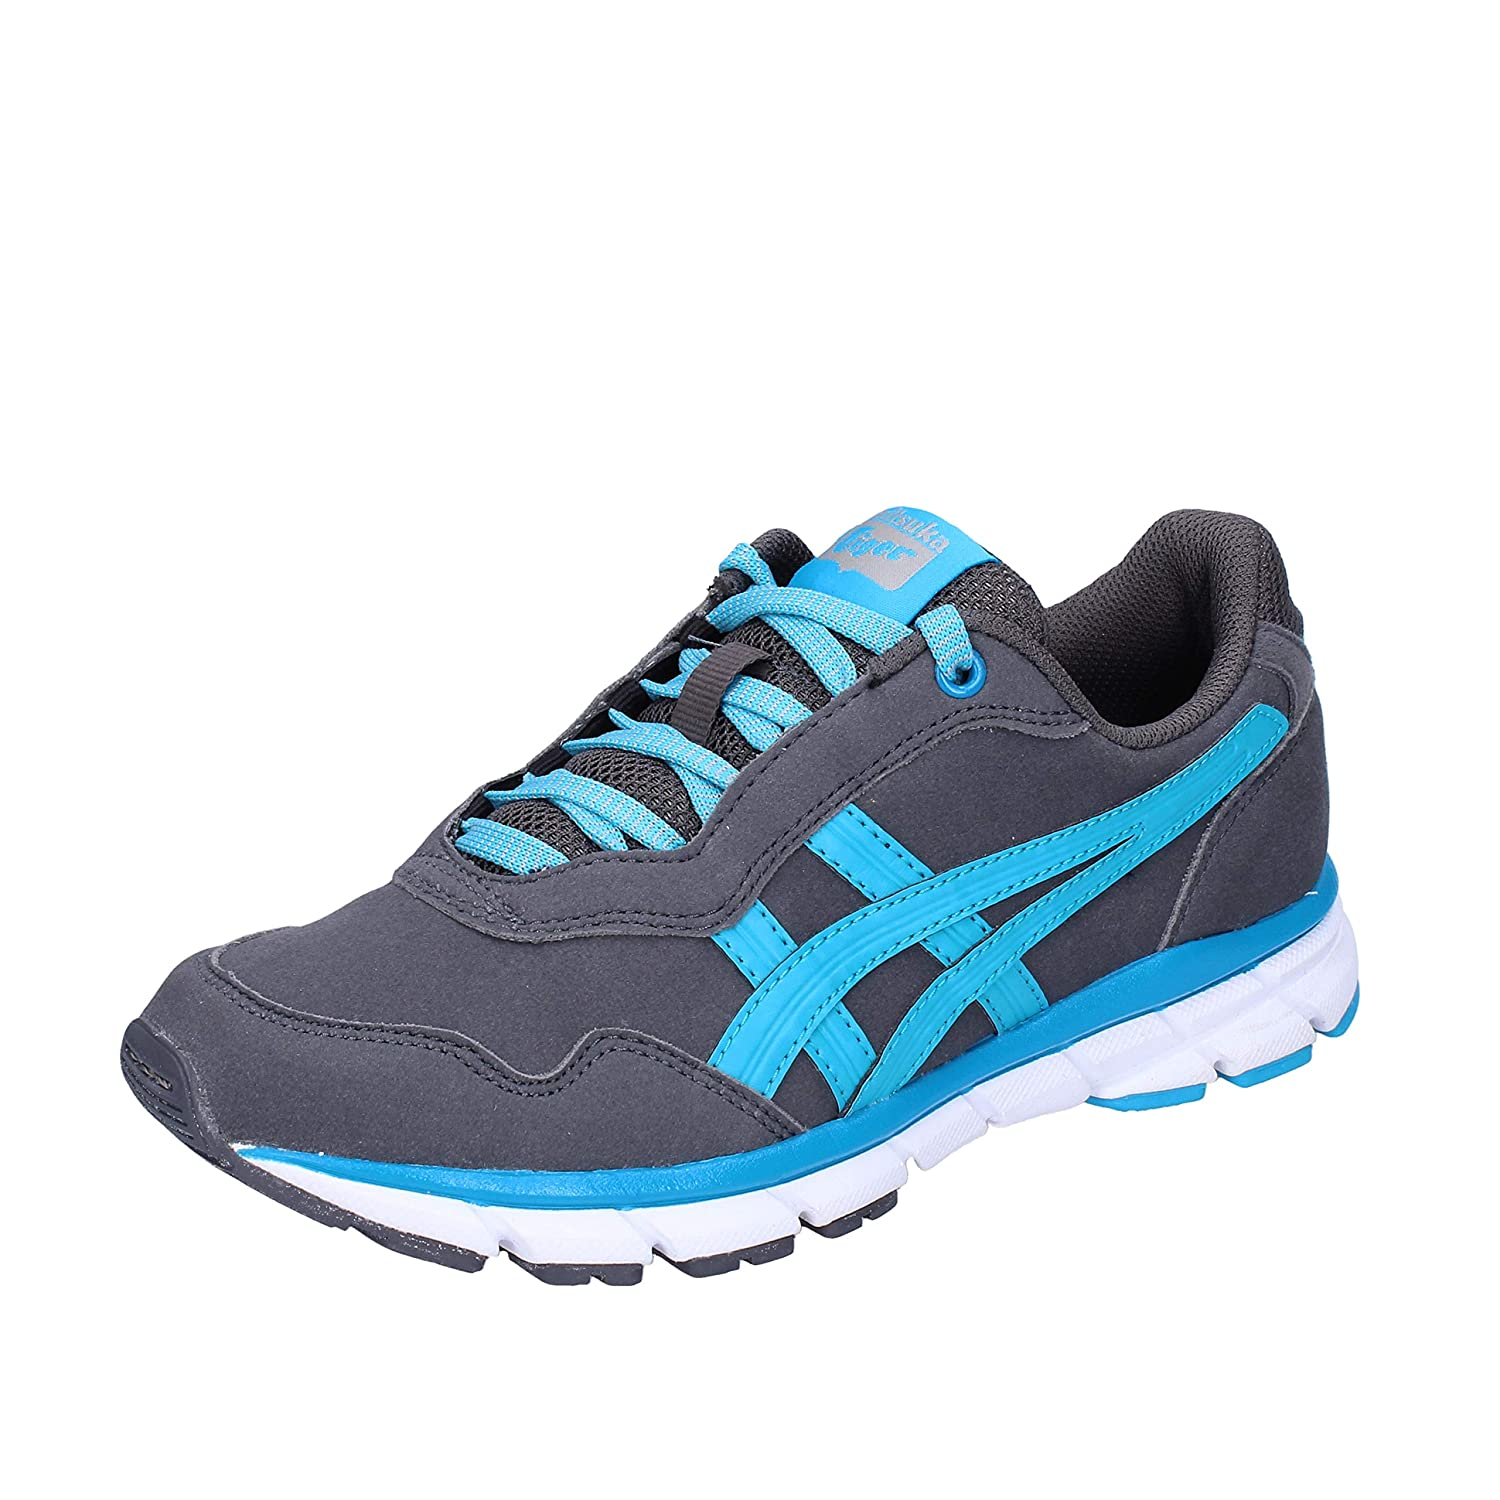 separation shoes 97a57 f1a92 Onitsuka Tiger by ASICS Gymnastics-Shoes Womens Grey 2.5 UK ...